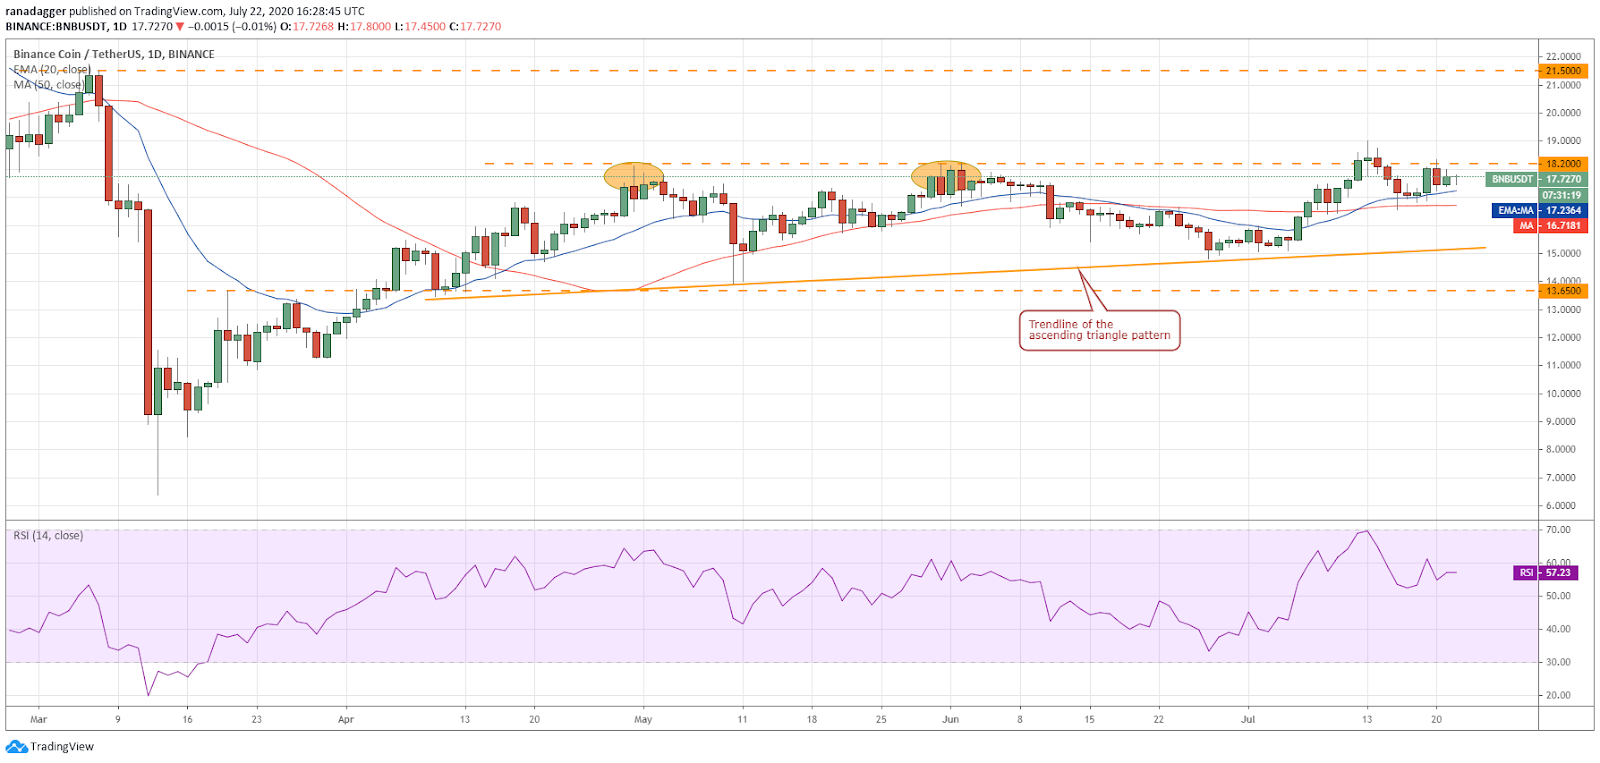 BNB/USD daily chart